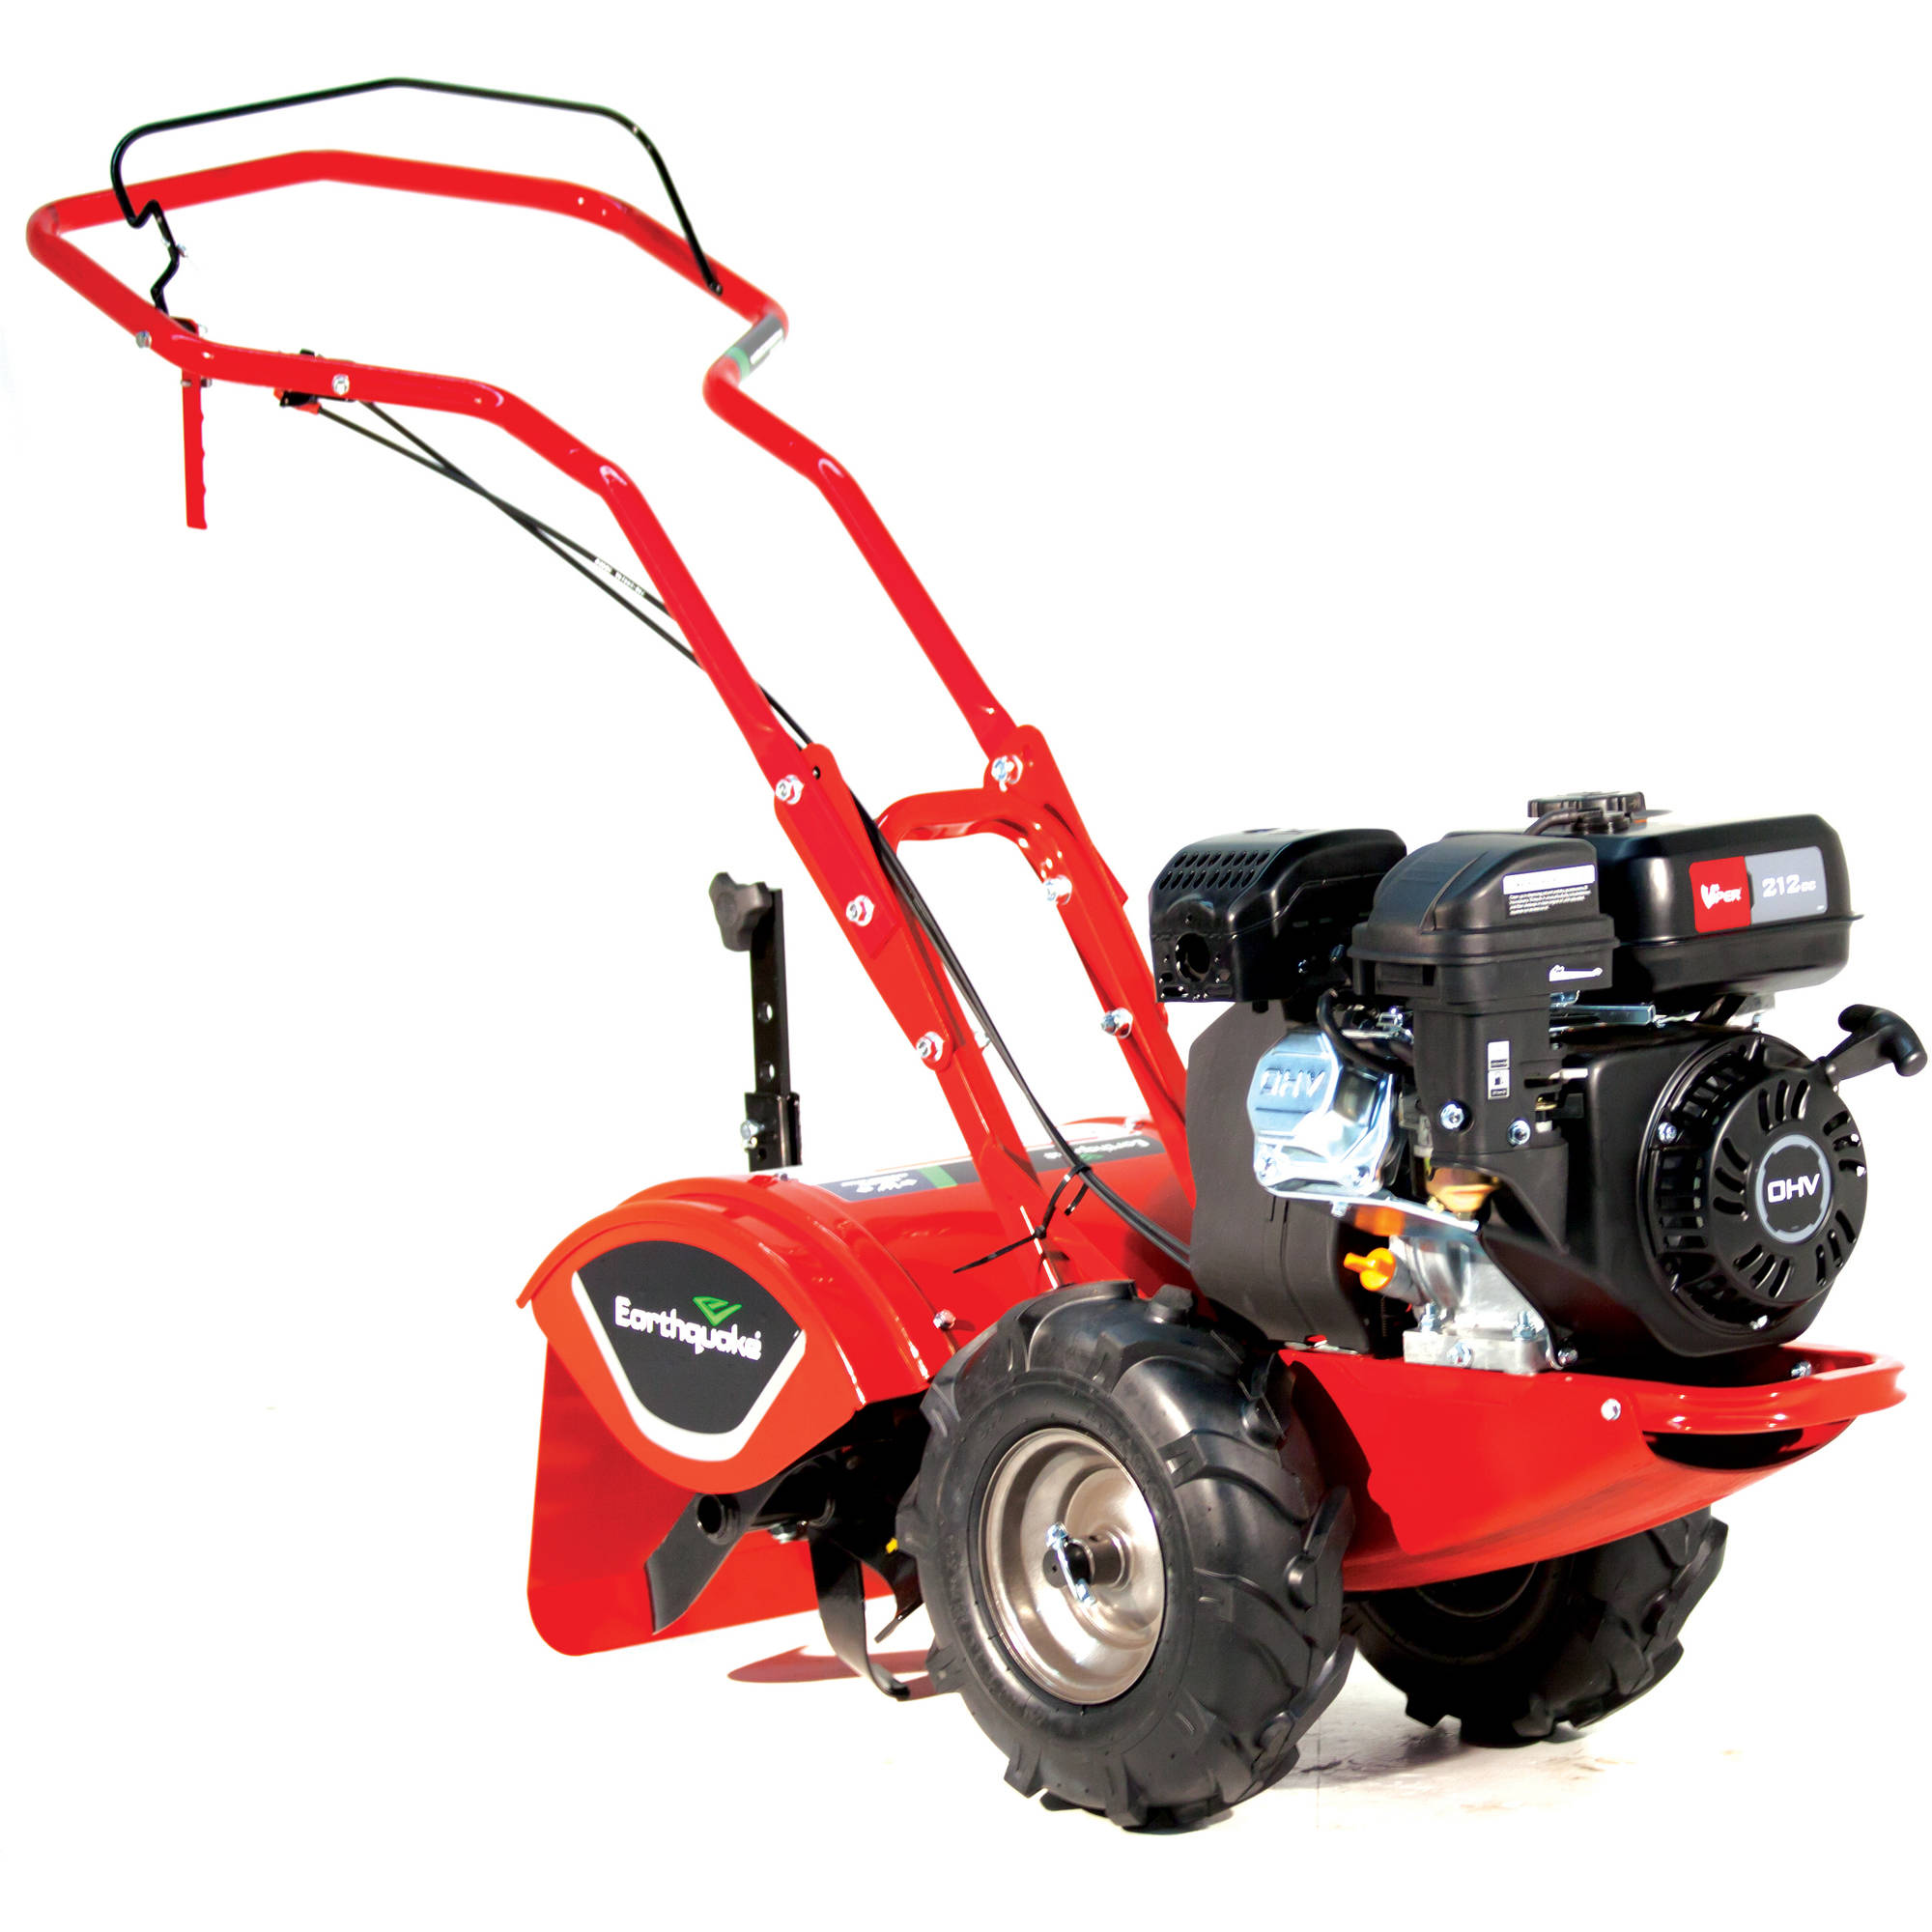 Earthquake Victory Compact Rear Tine Tiller with Reverse and 4-Cycle 212cc Viper Engine